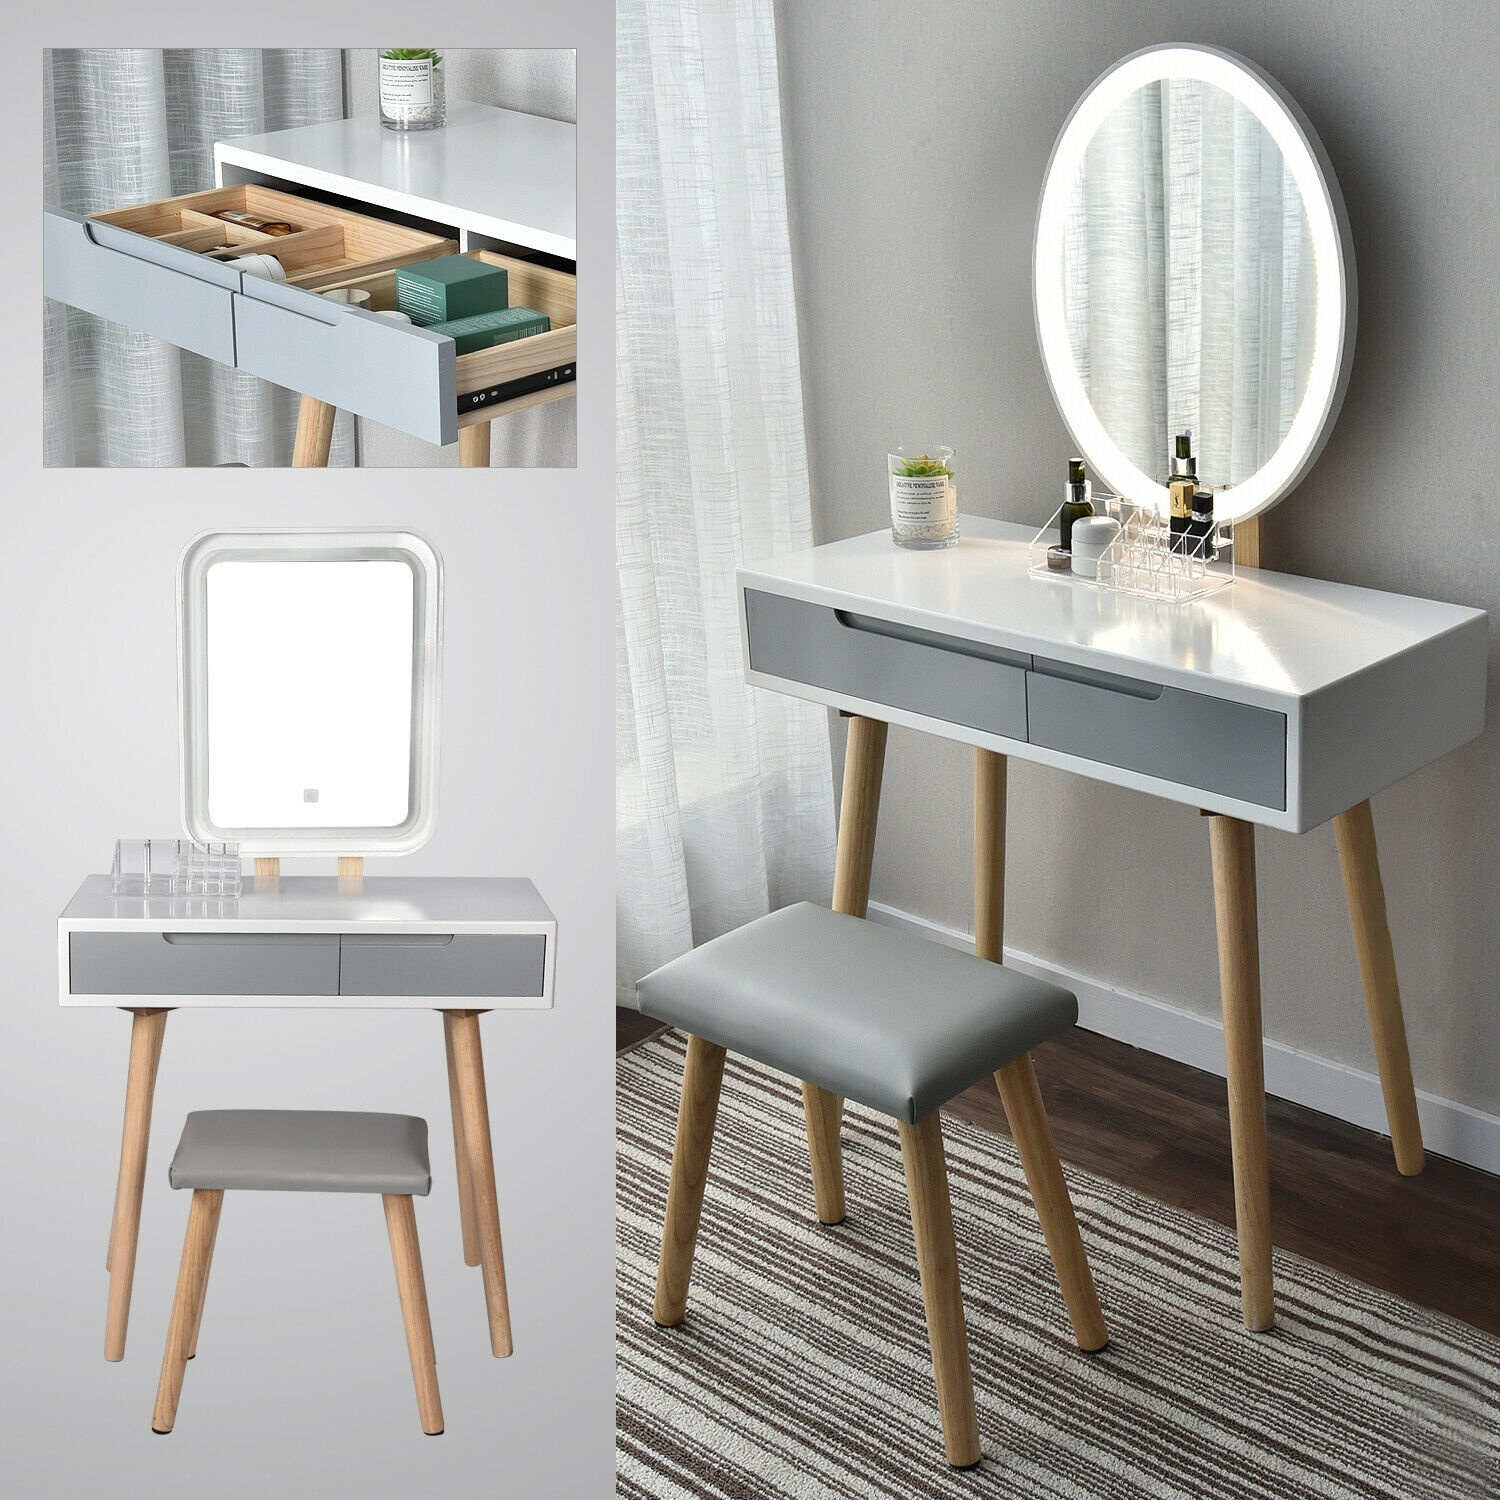 2 Drawers Vanity Makeup Dressing Table Set Jewelry Wood Desk W/Stool Led Mirror